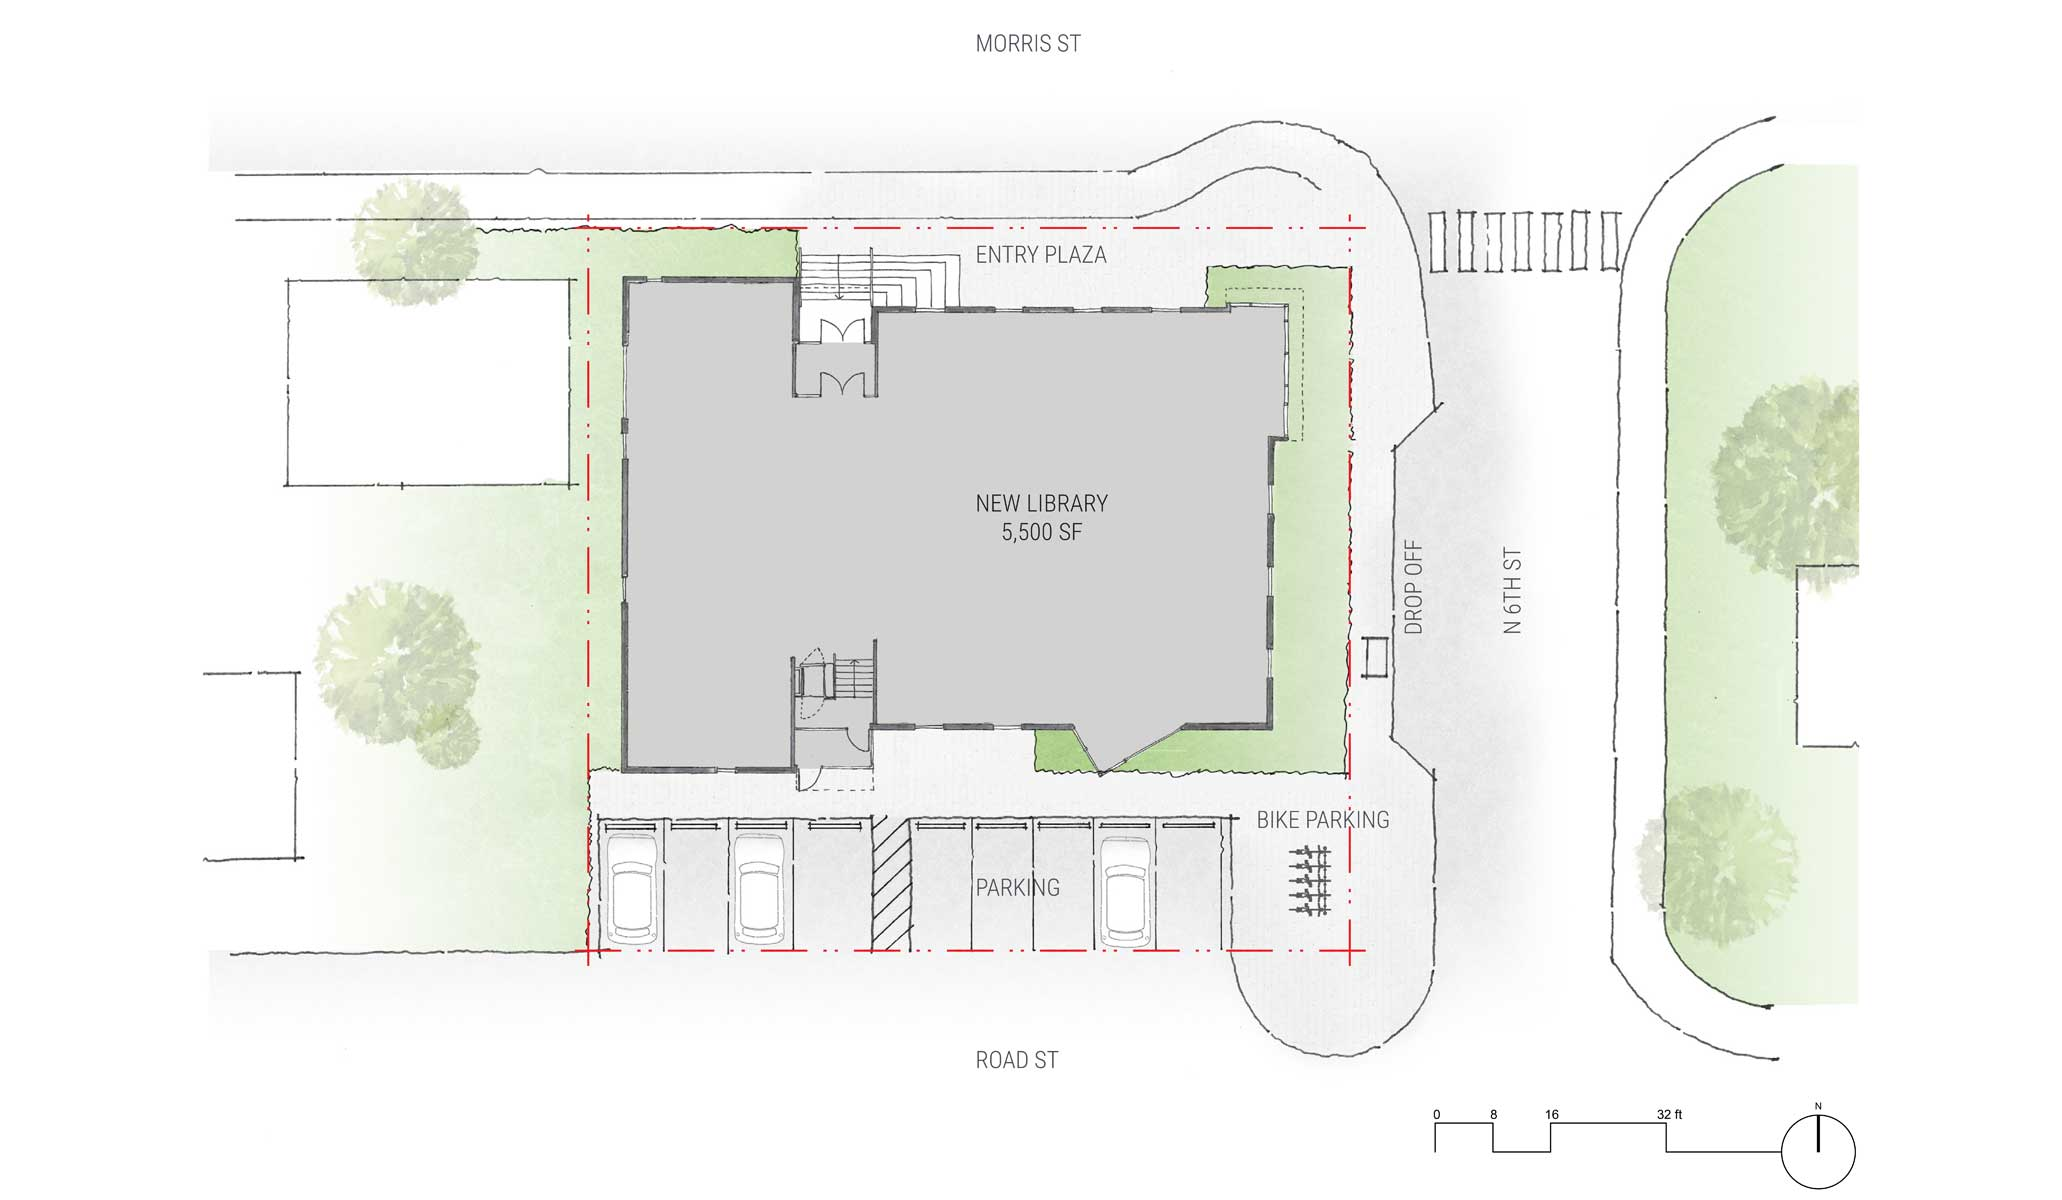 2 siteplanrendered BuildingWork – Rendered Site Plan